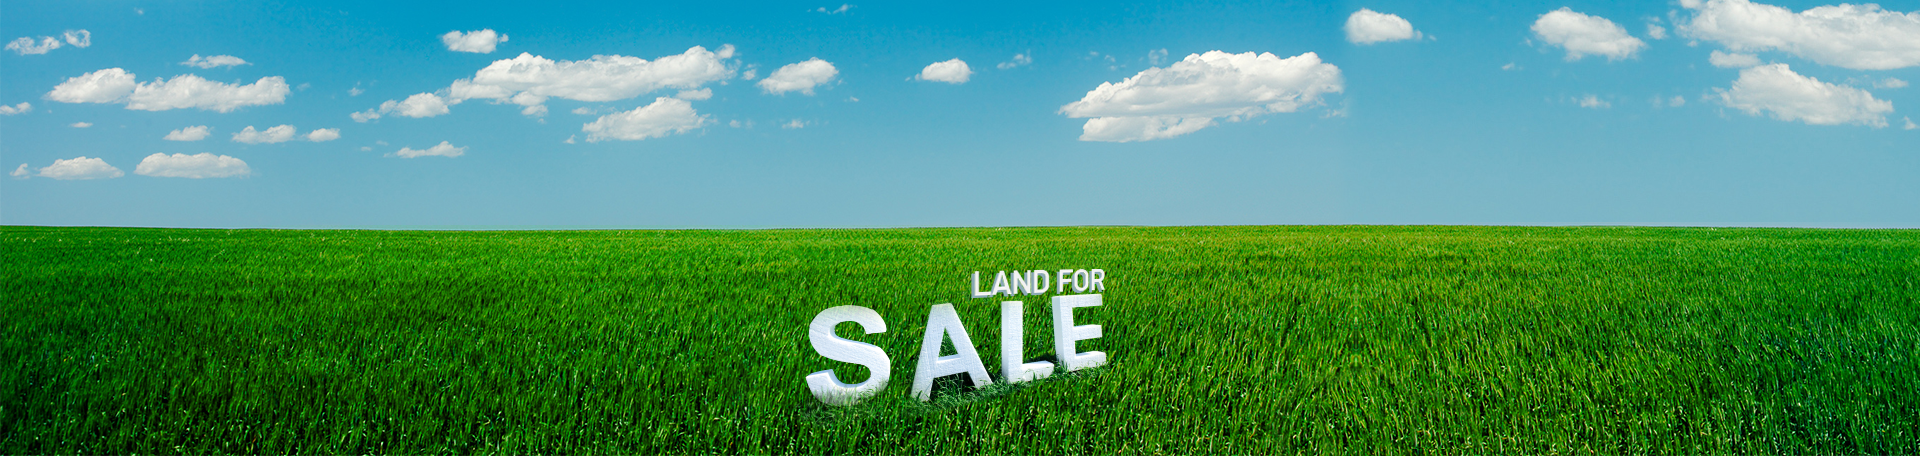 land_for_sale_1920x456_crop_and_resize_to_fit_478b24840a_1920x456_crop_and_resize_to_fit_478b24840a